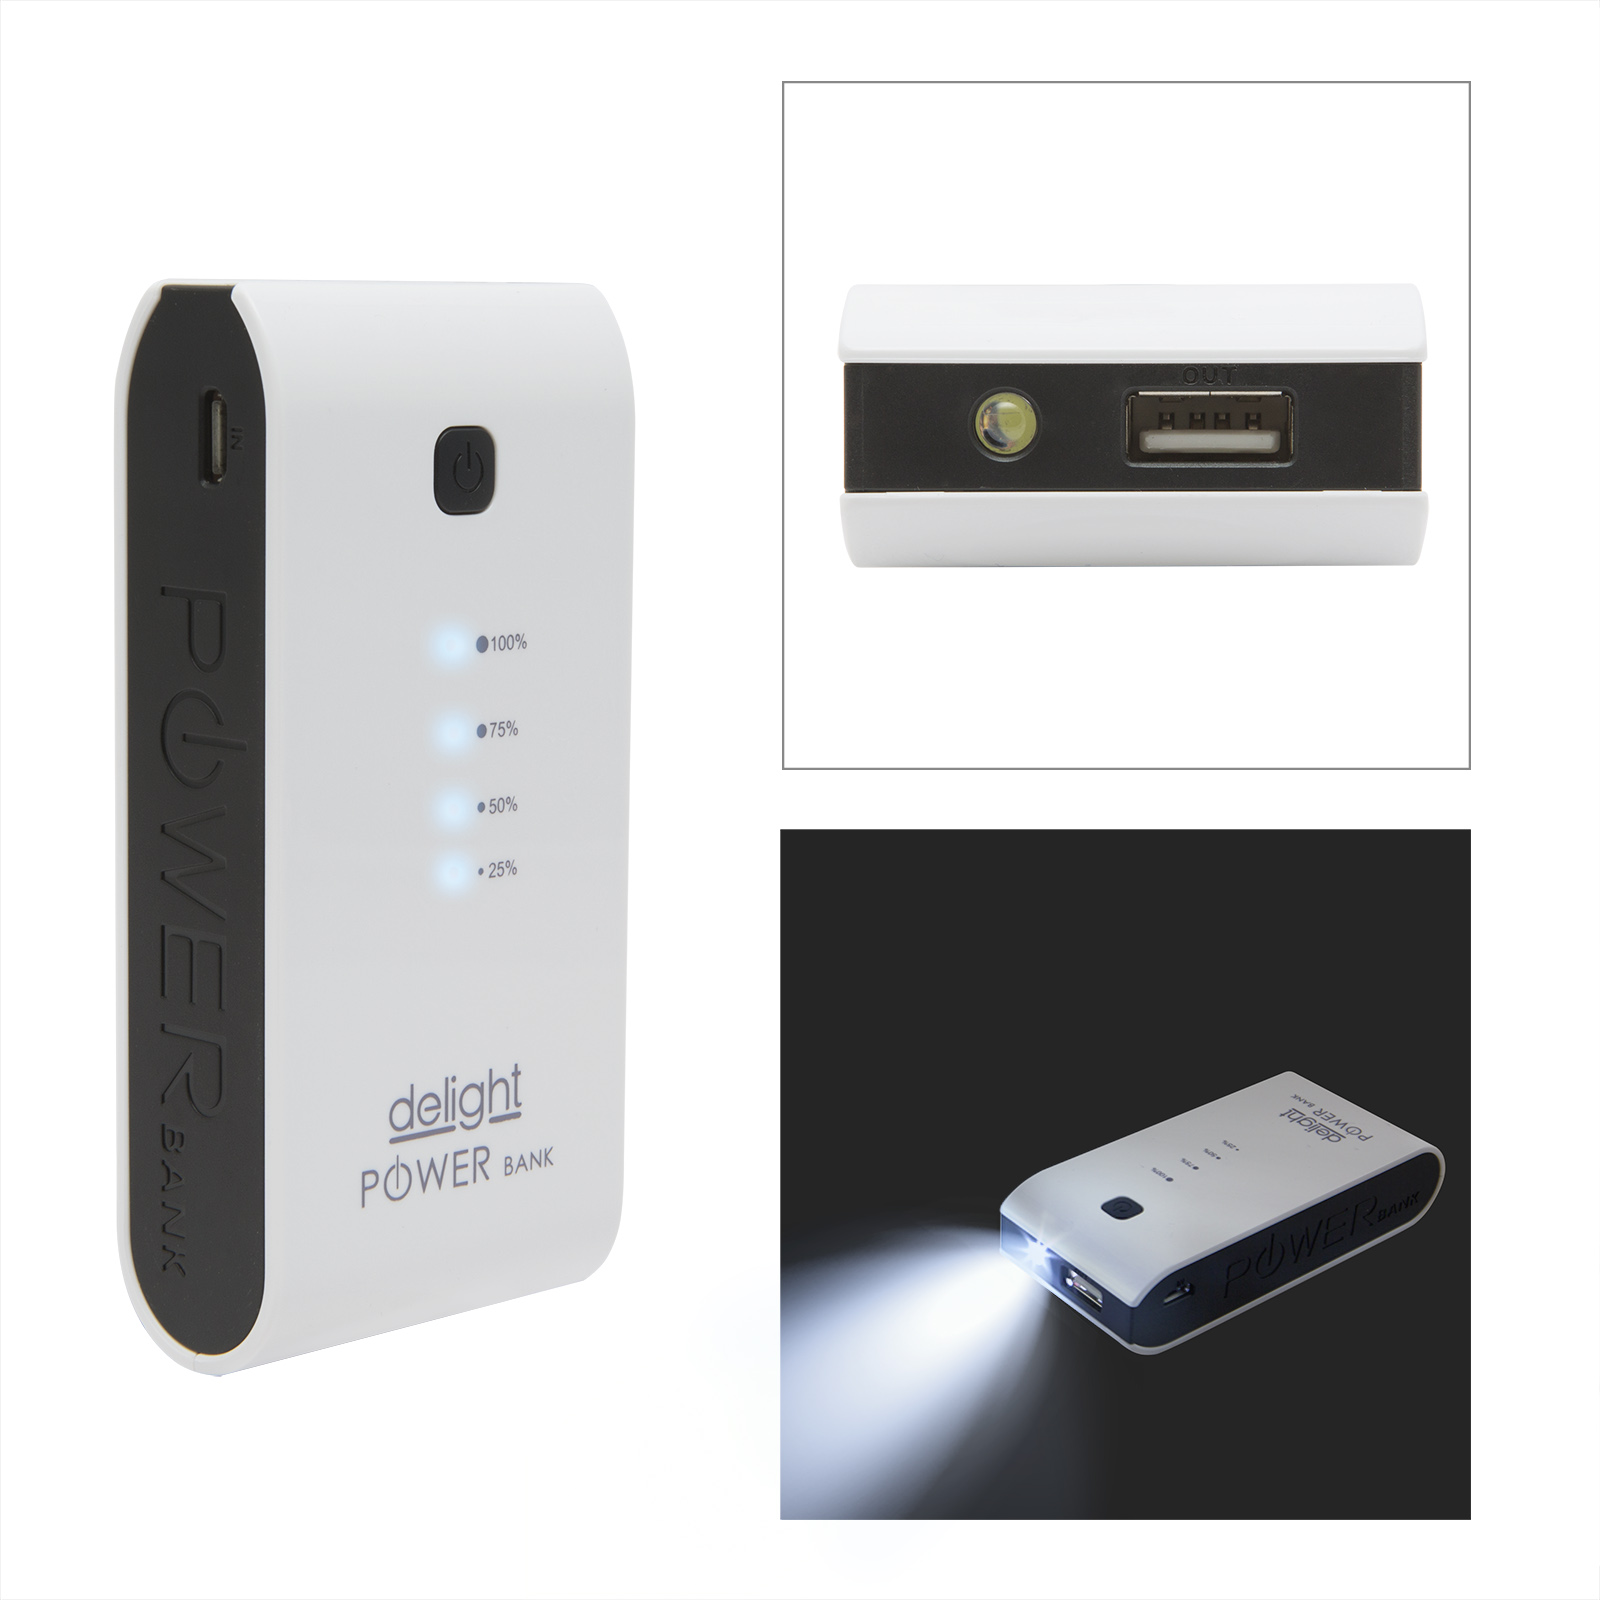 Power Bank 3200 mAh (Power Bank s kapacitou 3200 mAh)